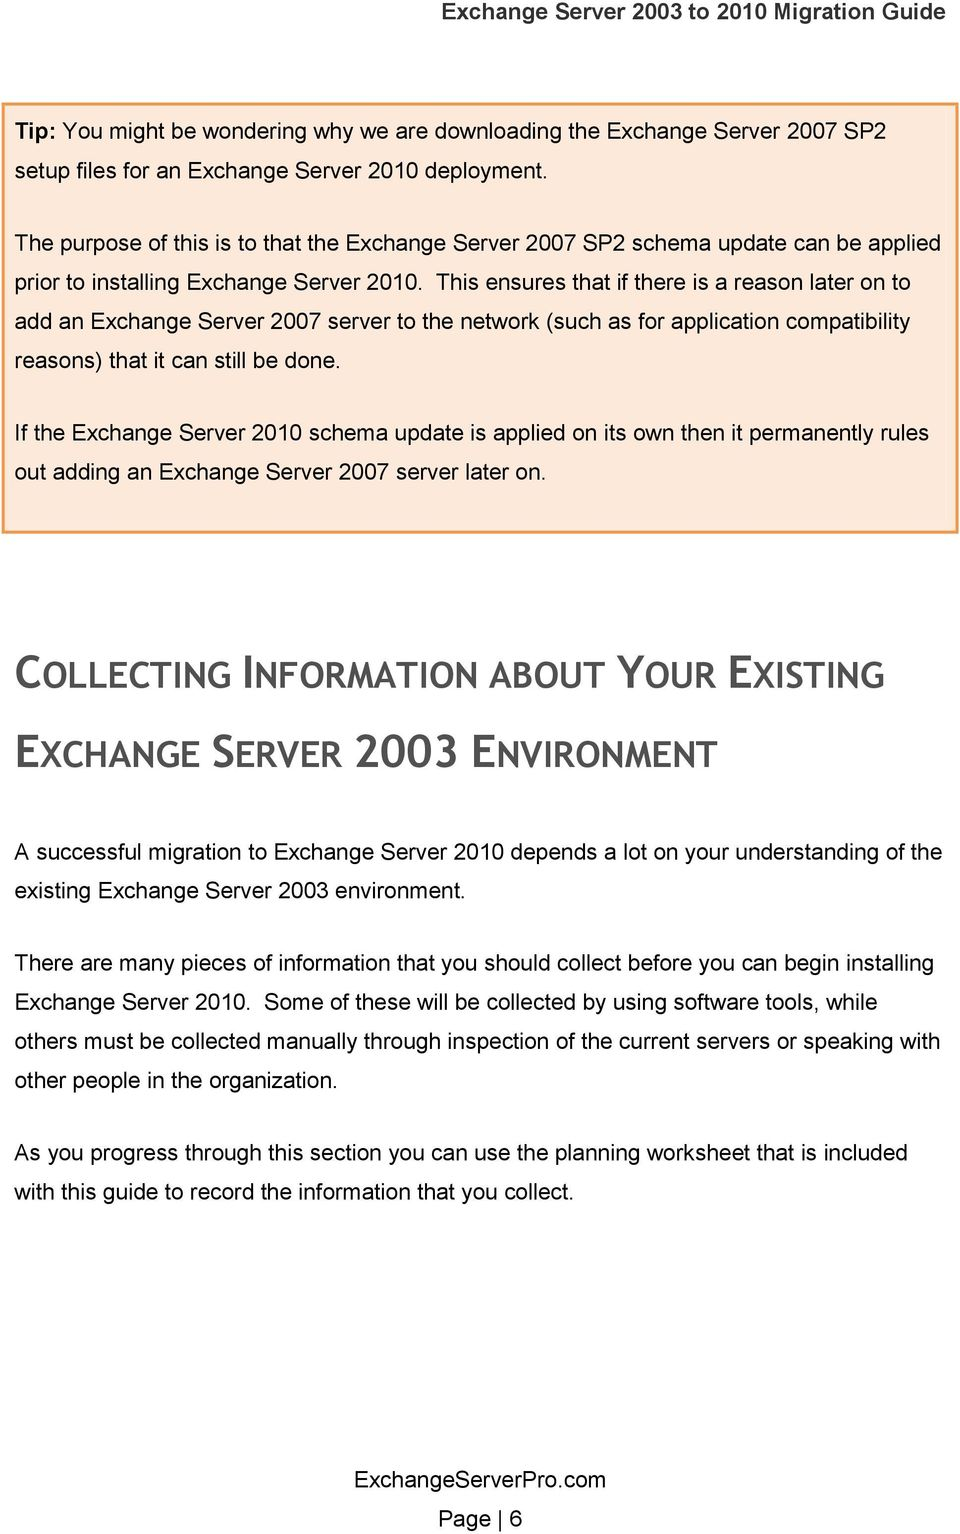 This ensures that if there is a reason later on to add an Exchange Server 2007 server to the network (such as for application compatibility reasons) that it can still be done.